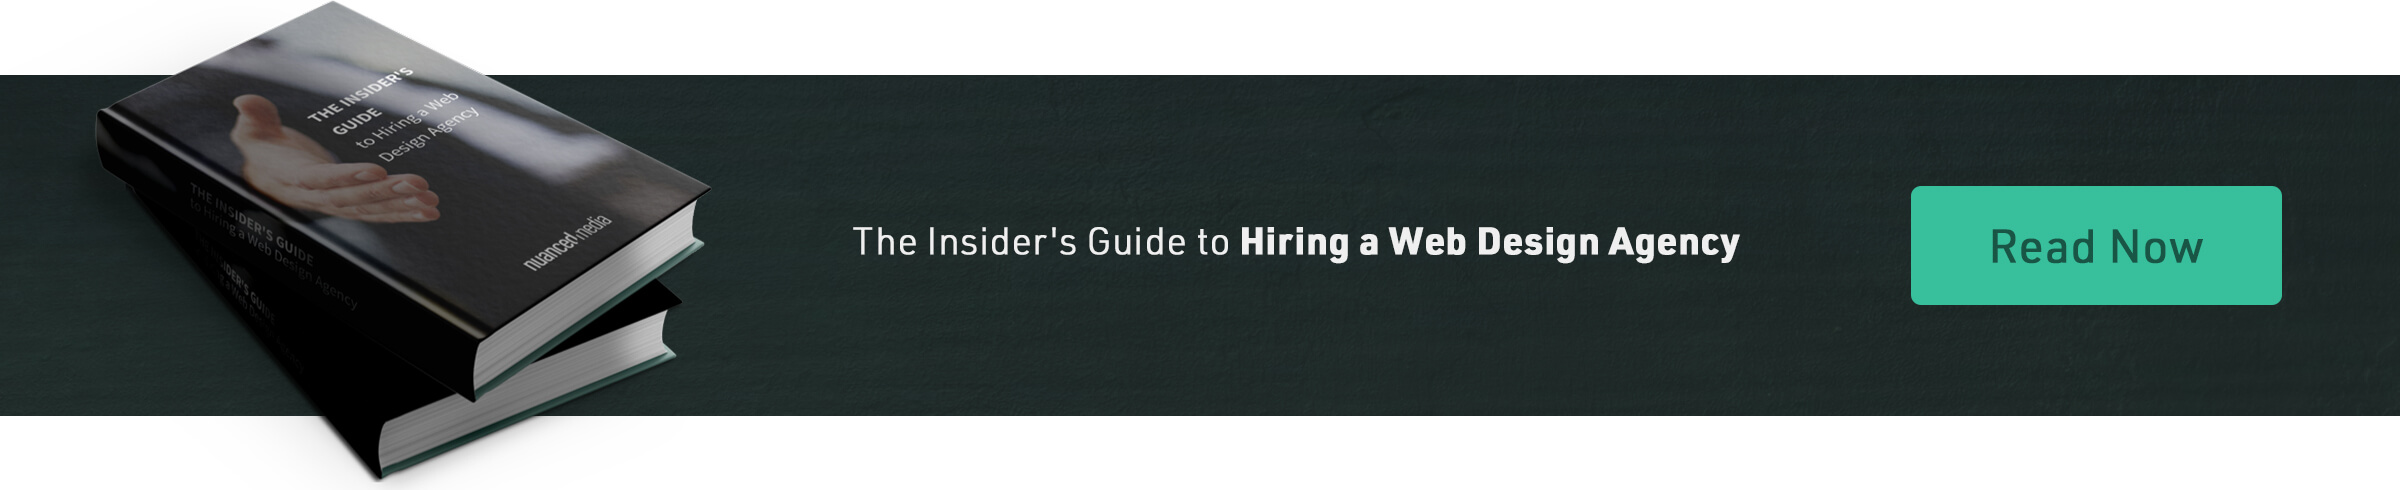 The Insider's Guide to Hiring a Web Design Agency